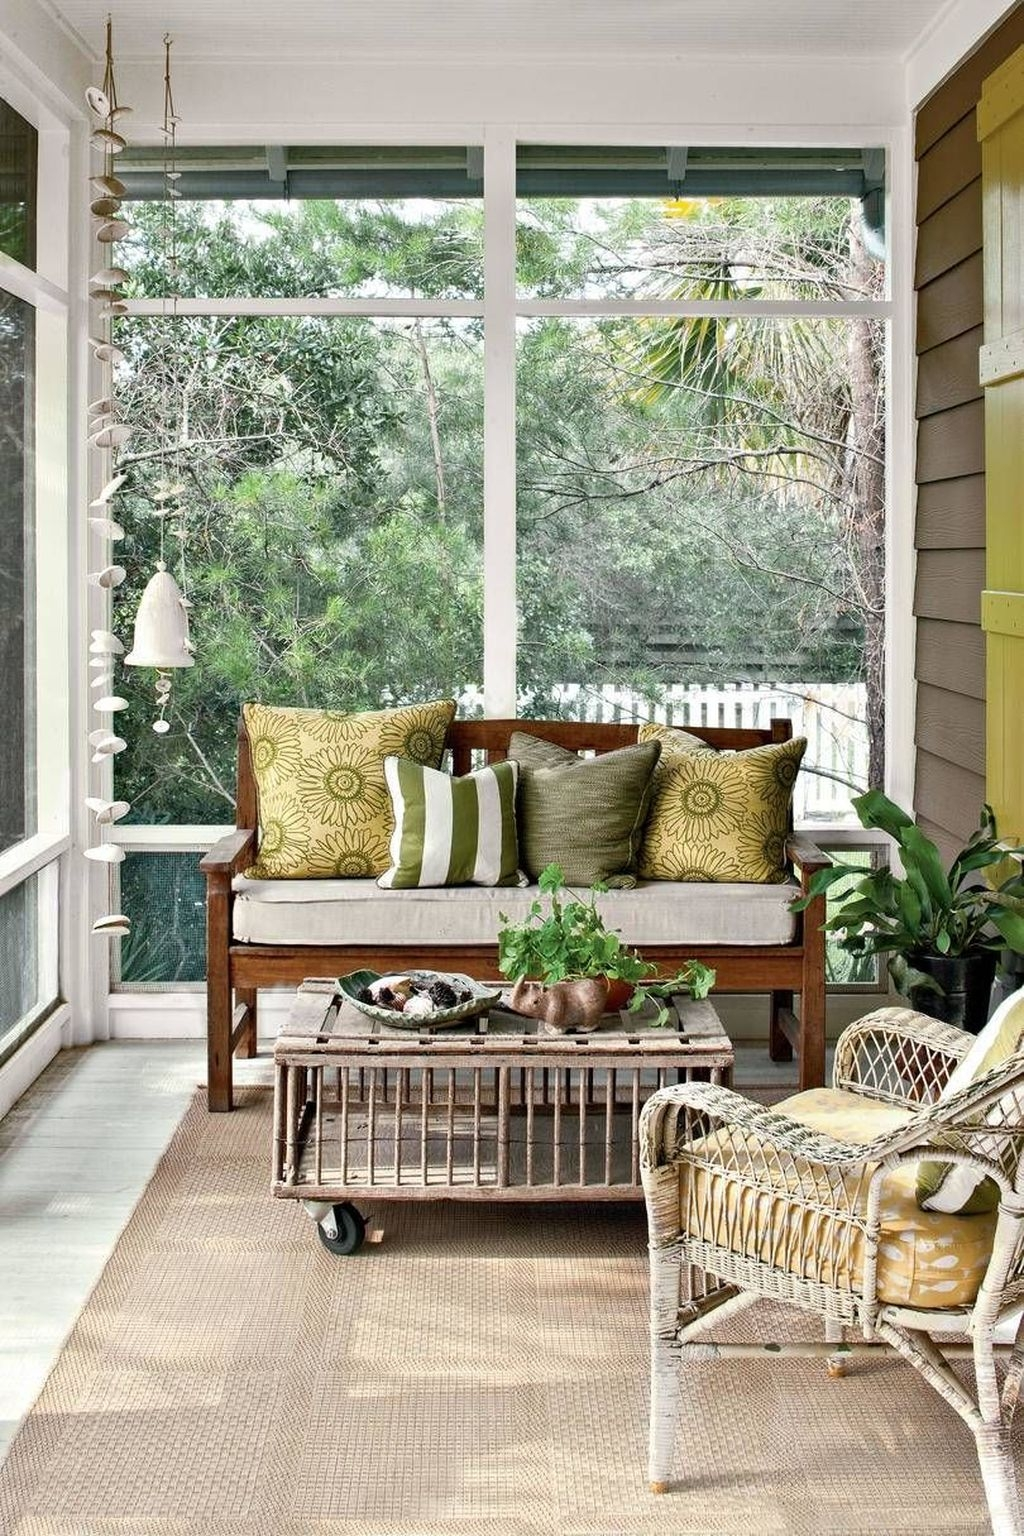 Brilliant Closed Balcony Design Ideas To Enjoy In All Weather Conditions14